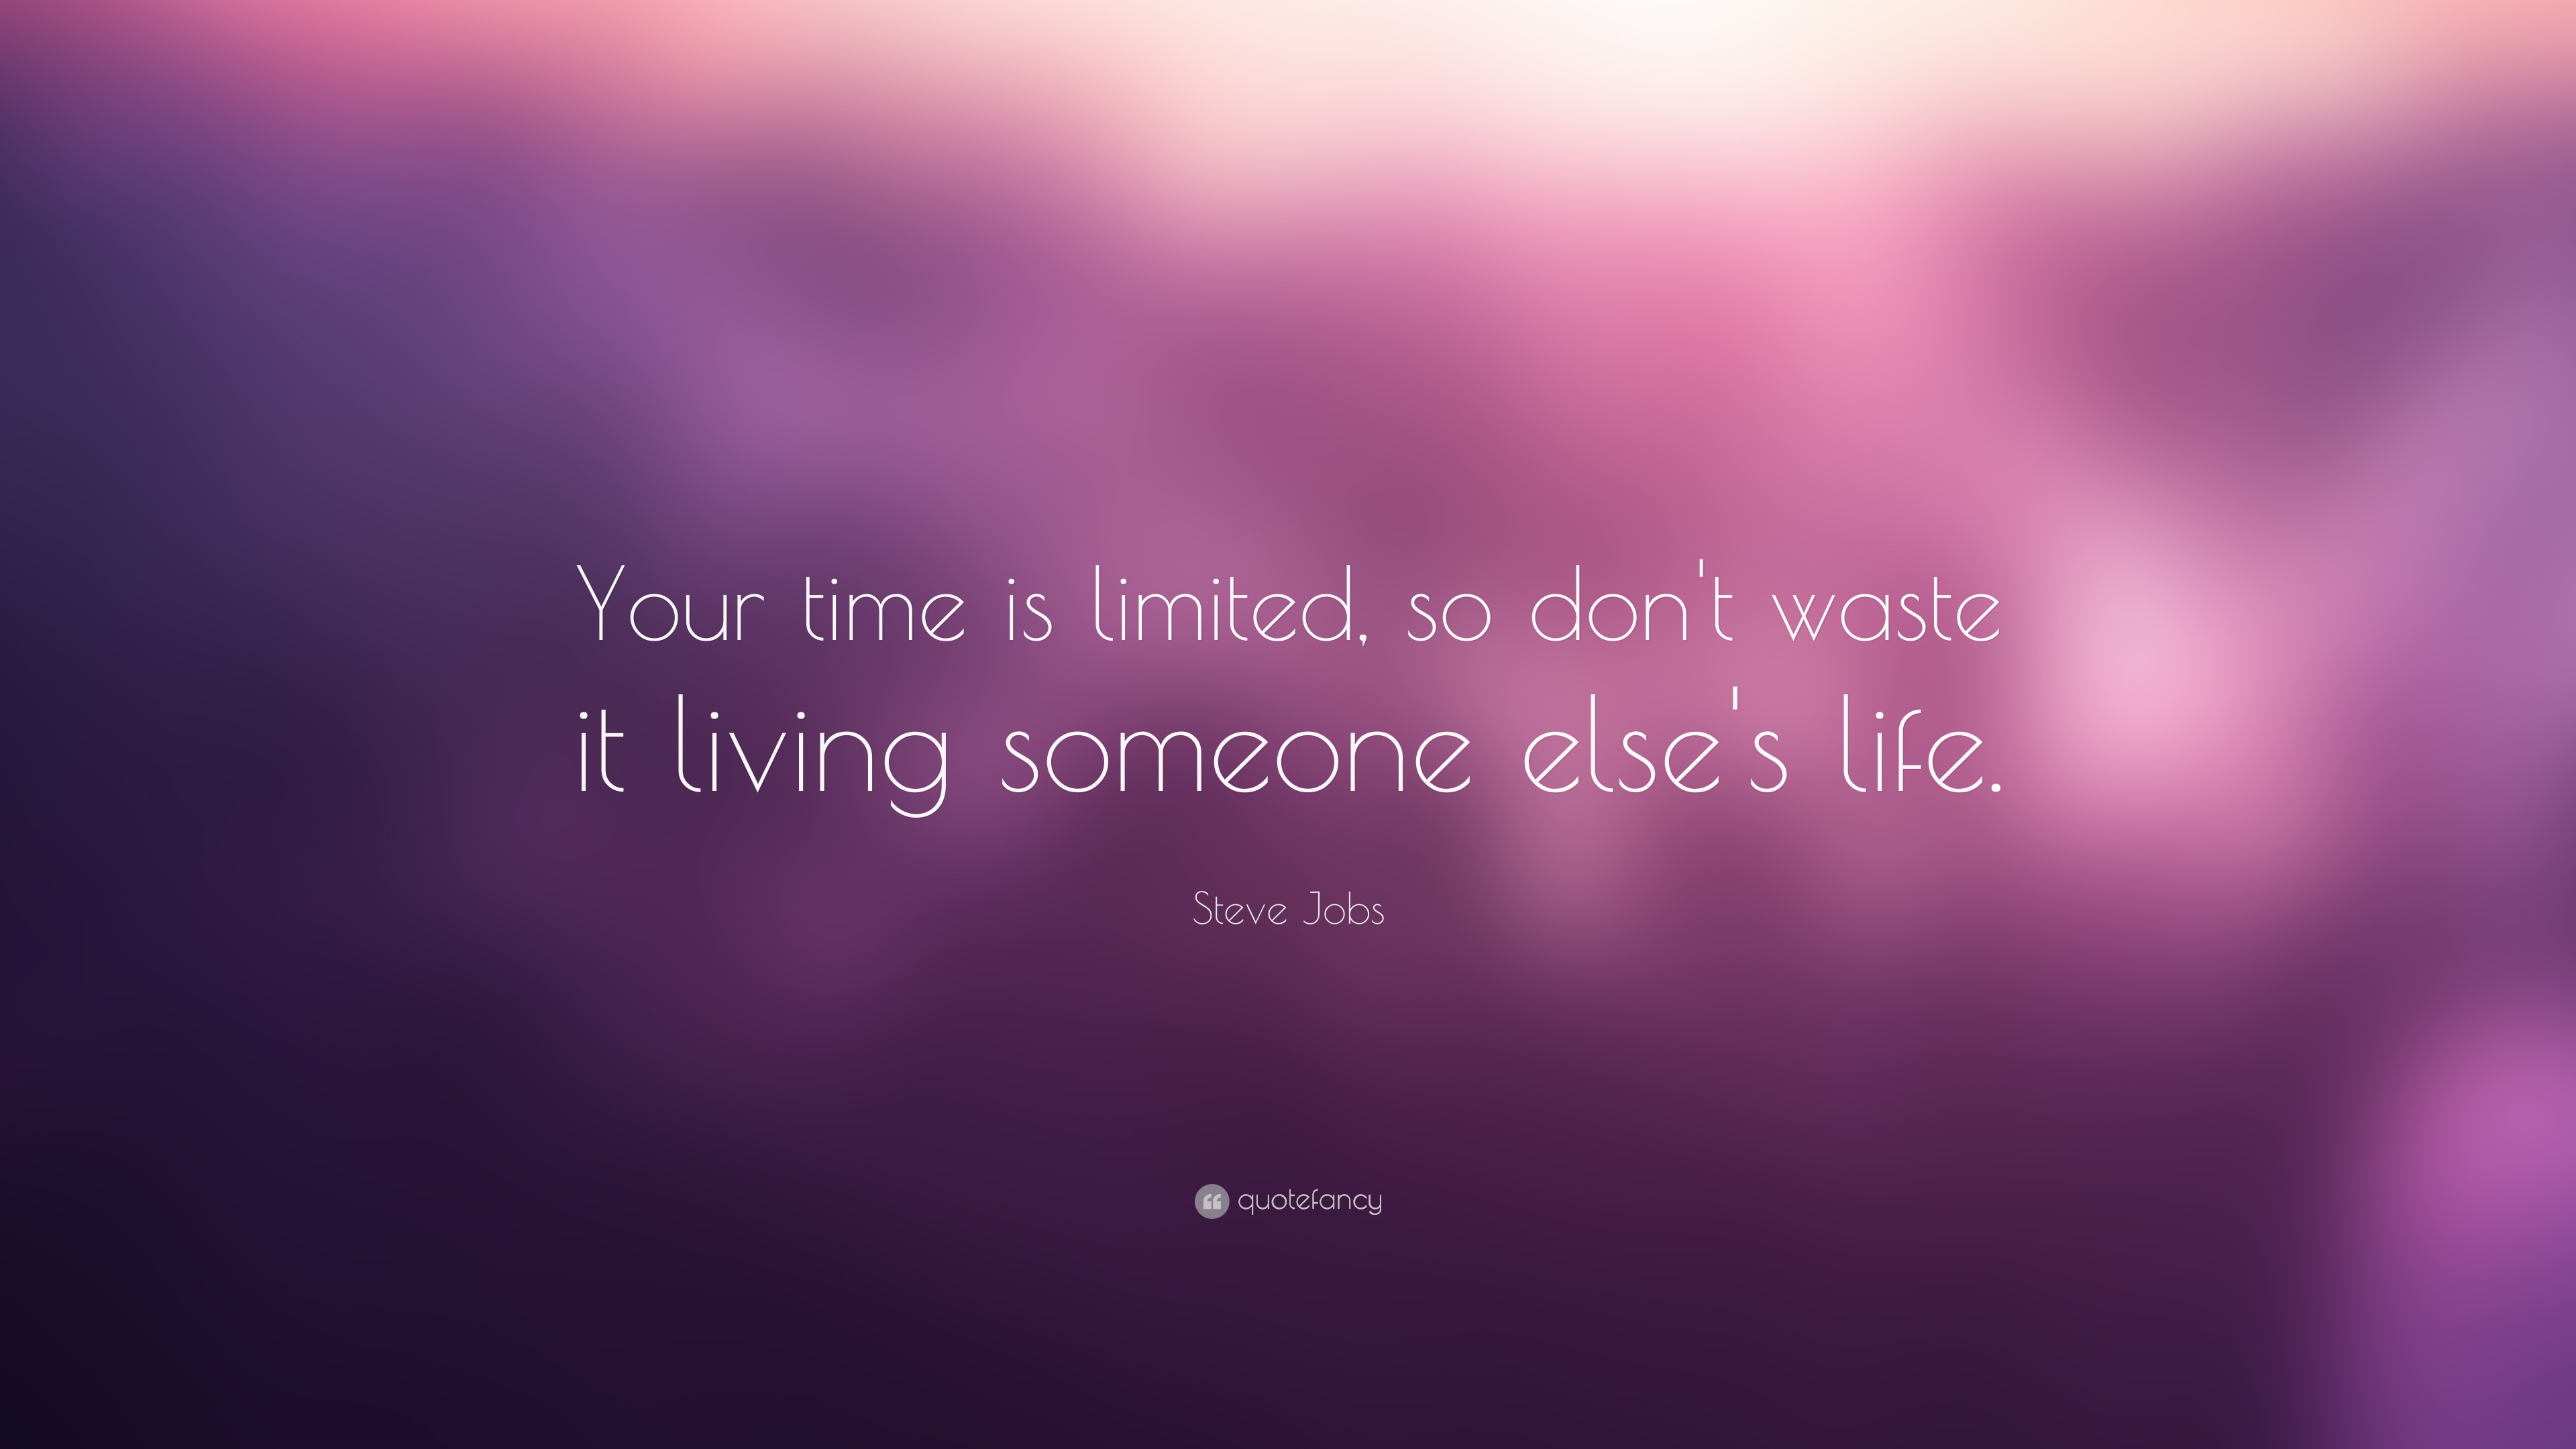 Country Girl Quotes Wallpapers Steve Jobs Quote Your Time Is Limited So Don T Waste It